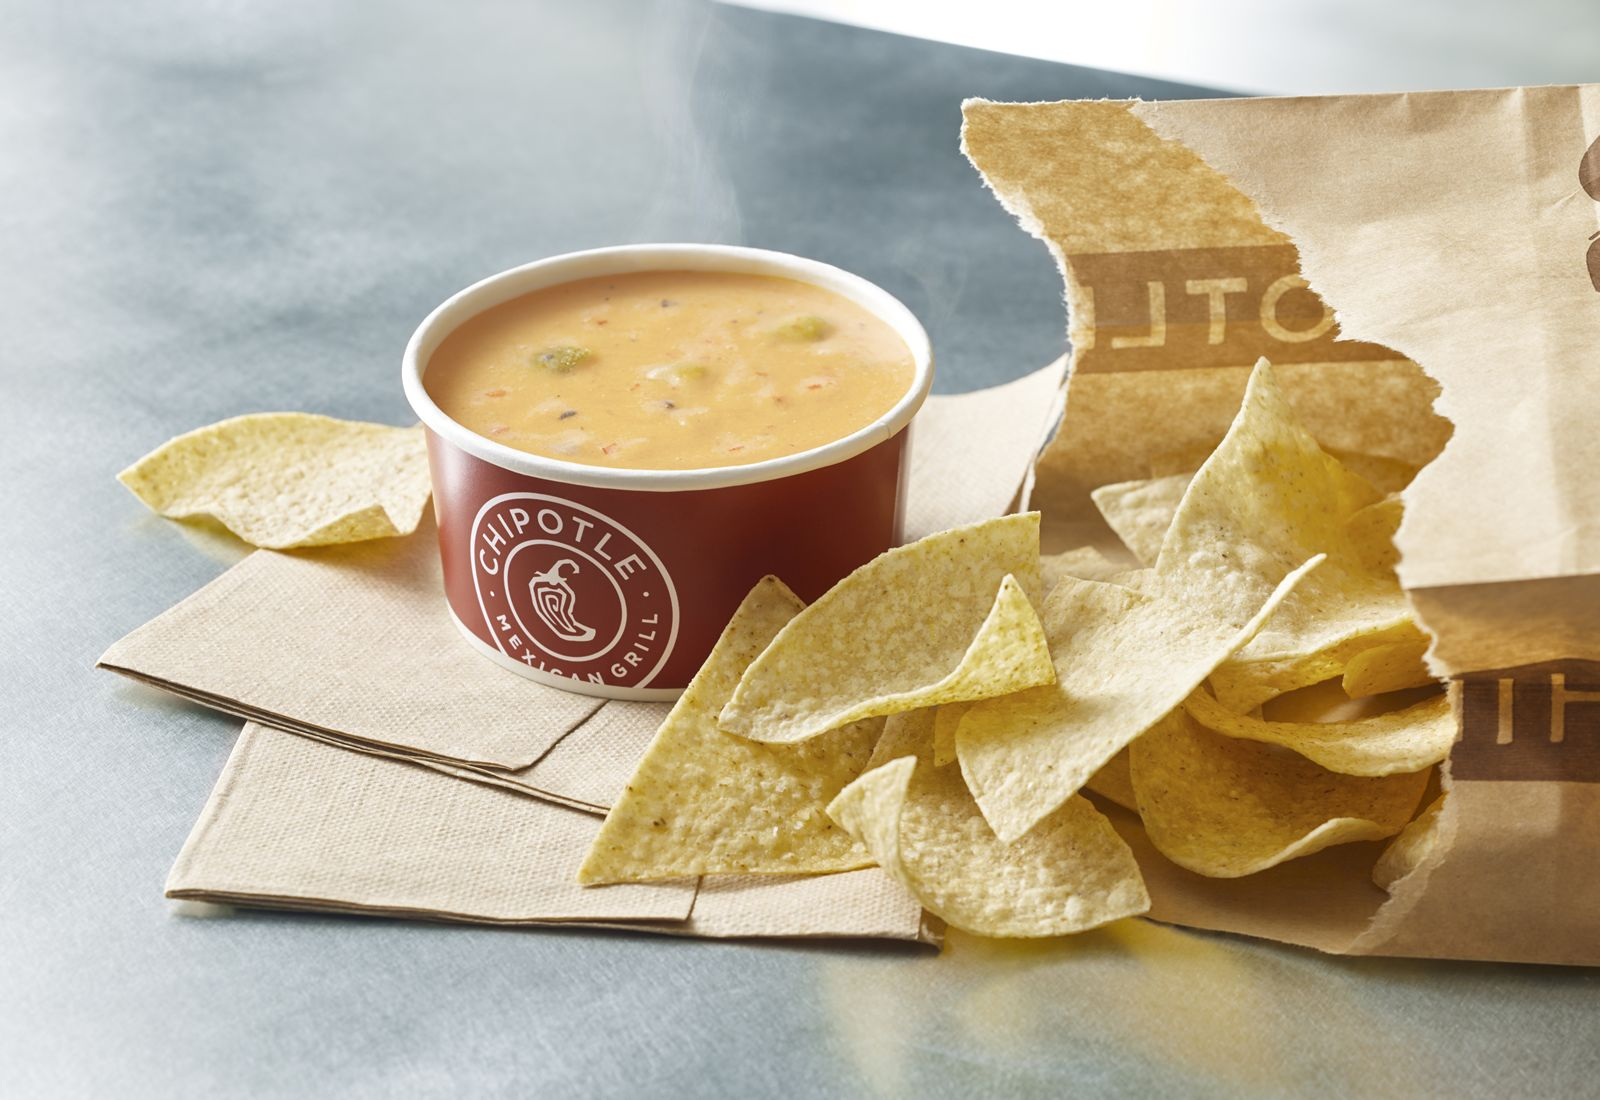 Chipotle Cracks Code on All-Natural Queso; Available in All U.S. Restaurants on September 12